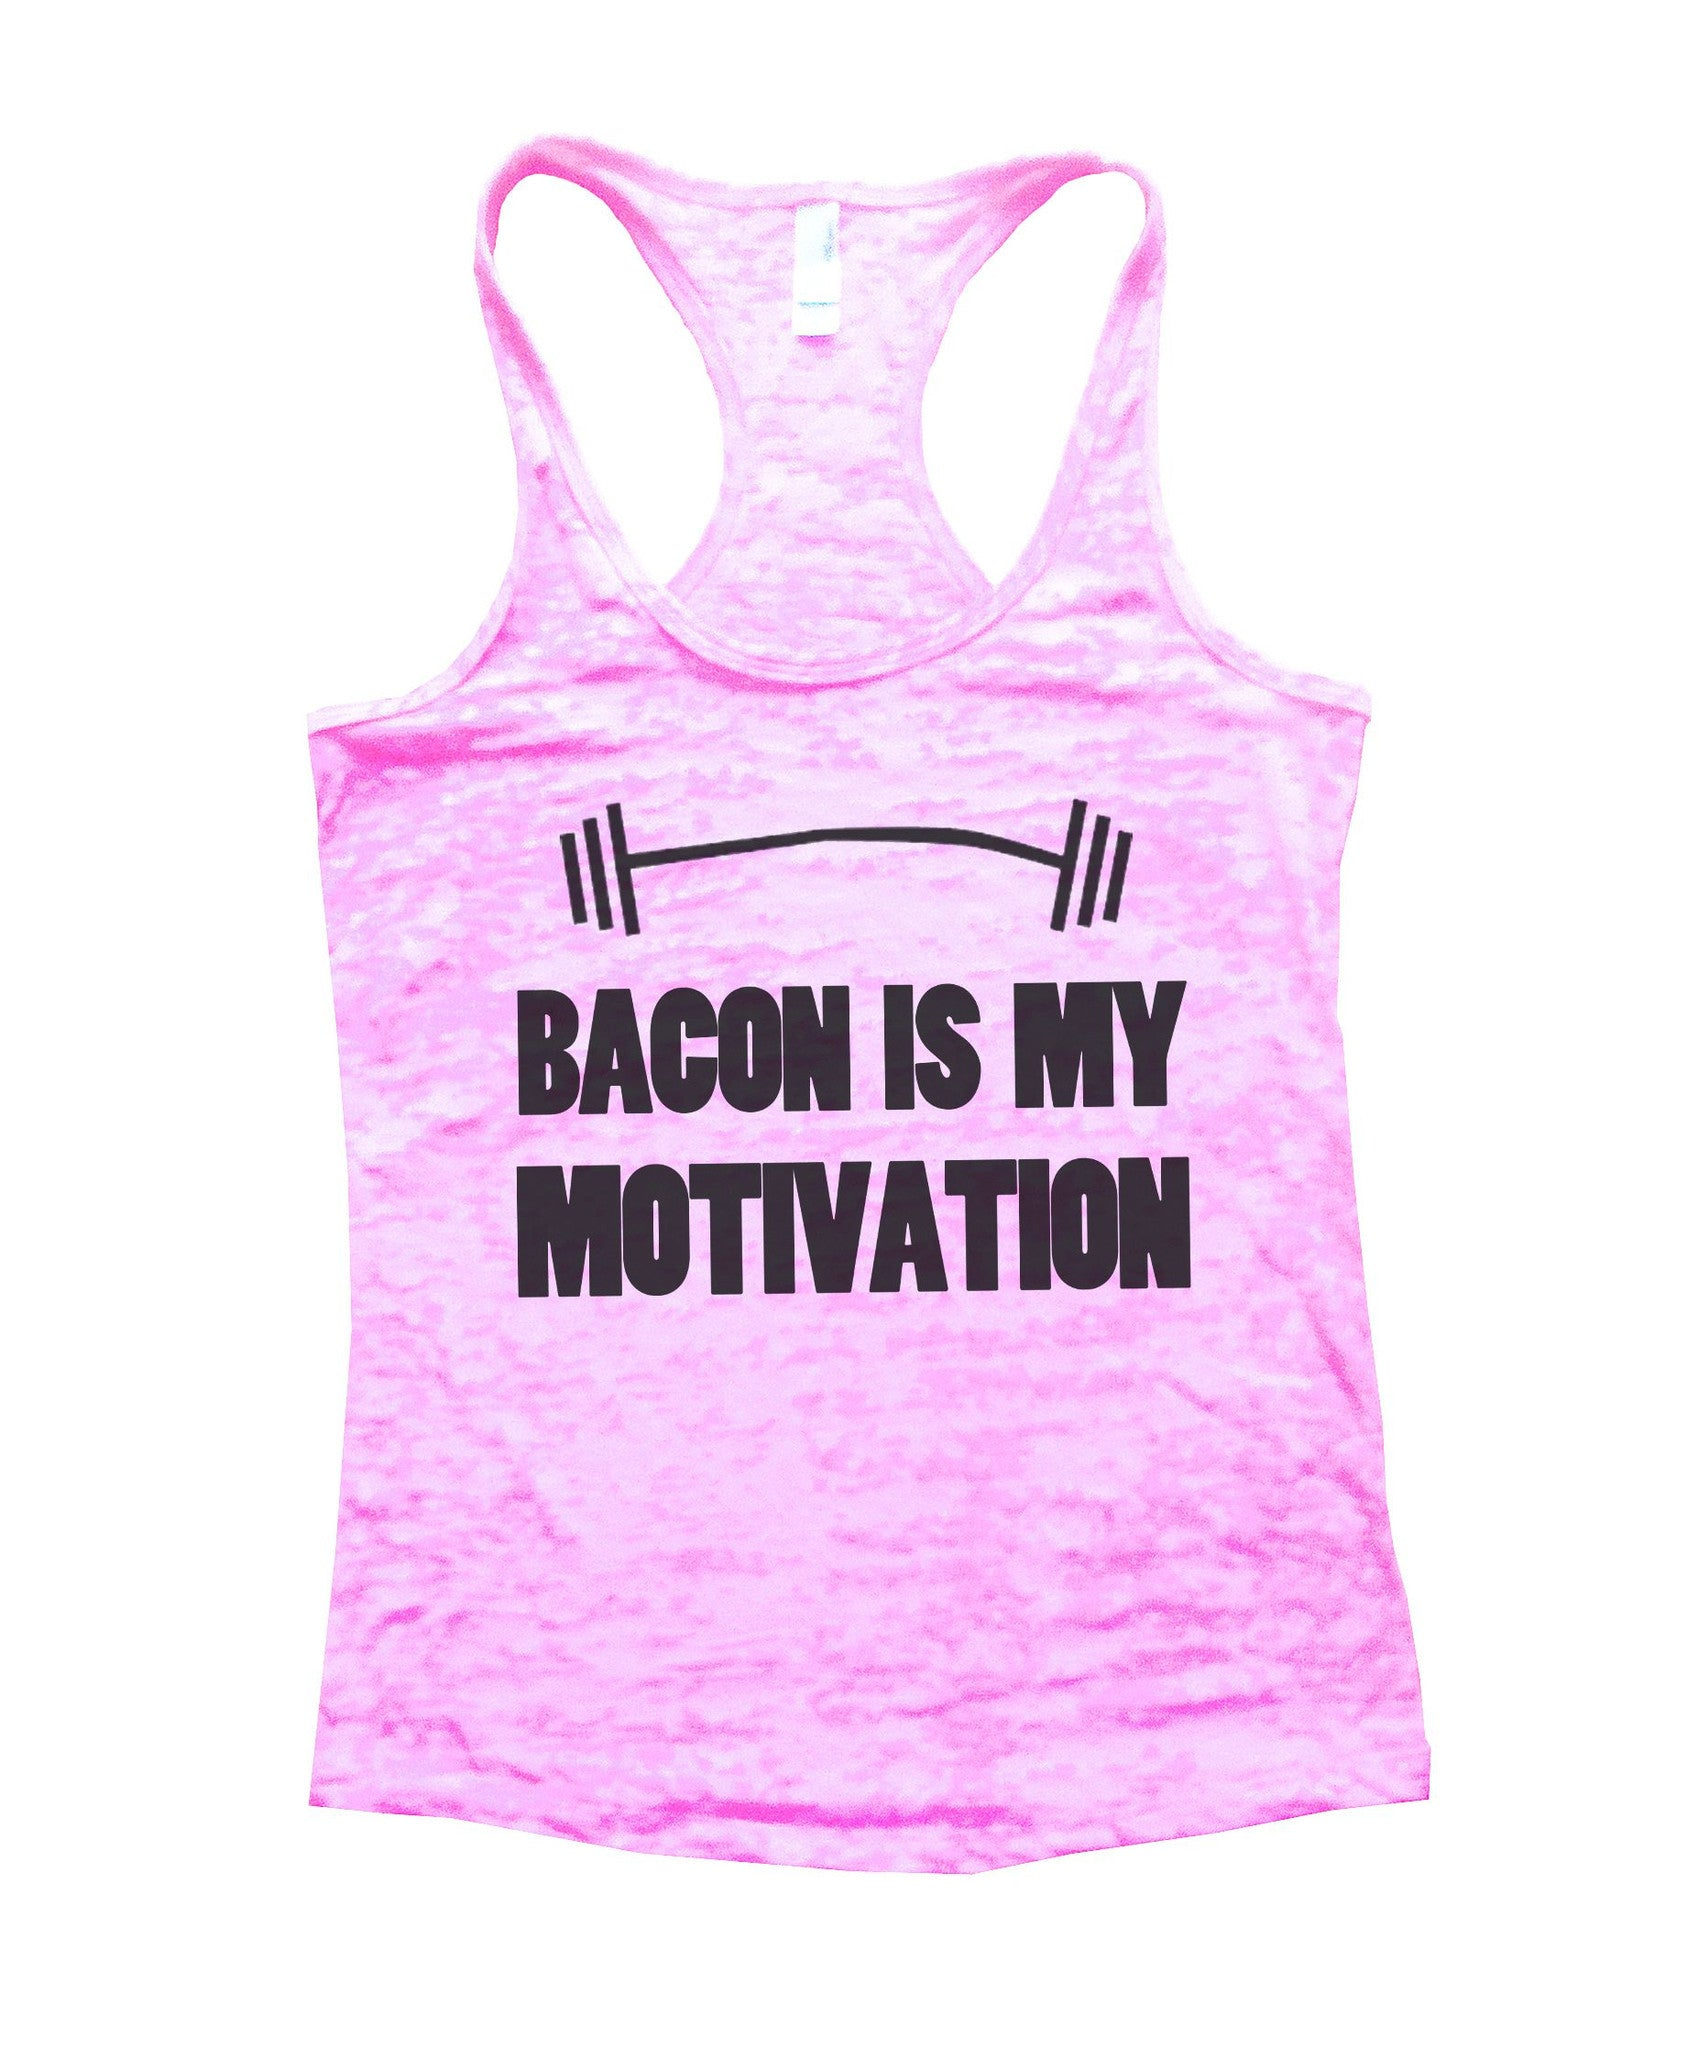 Bacon Is My Motivation Burnout Tank Top By BurnoutTankTops.com - 740 - Funny Shirts Tank Tops Burnouts and Triblends  - 1